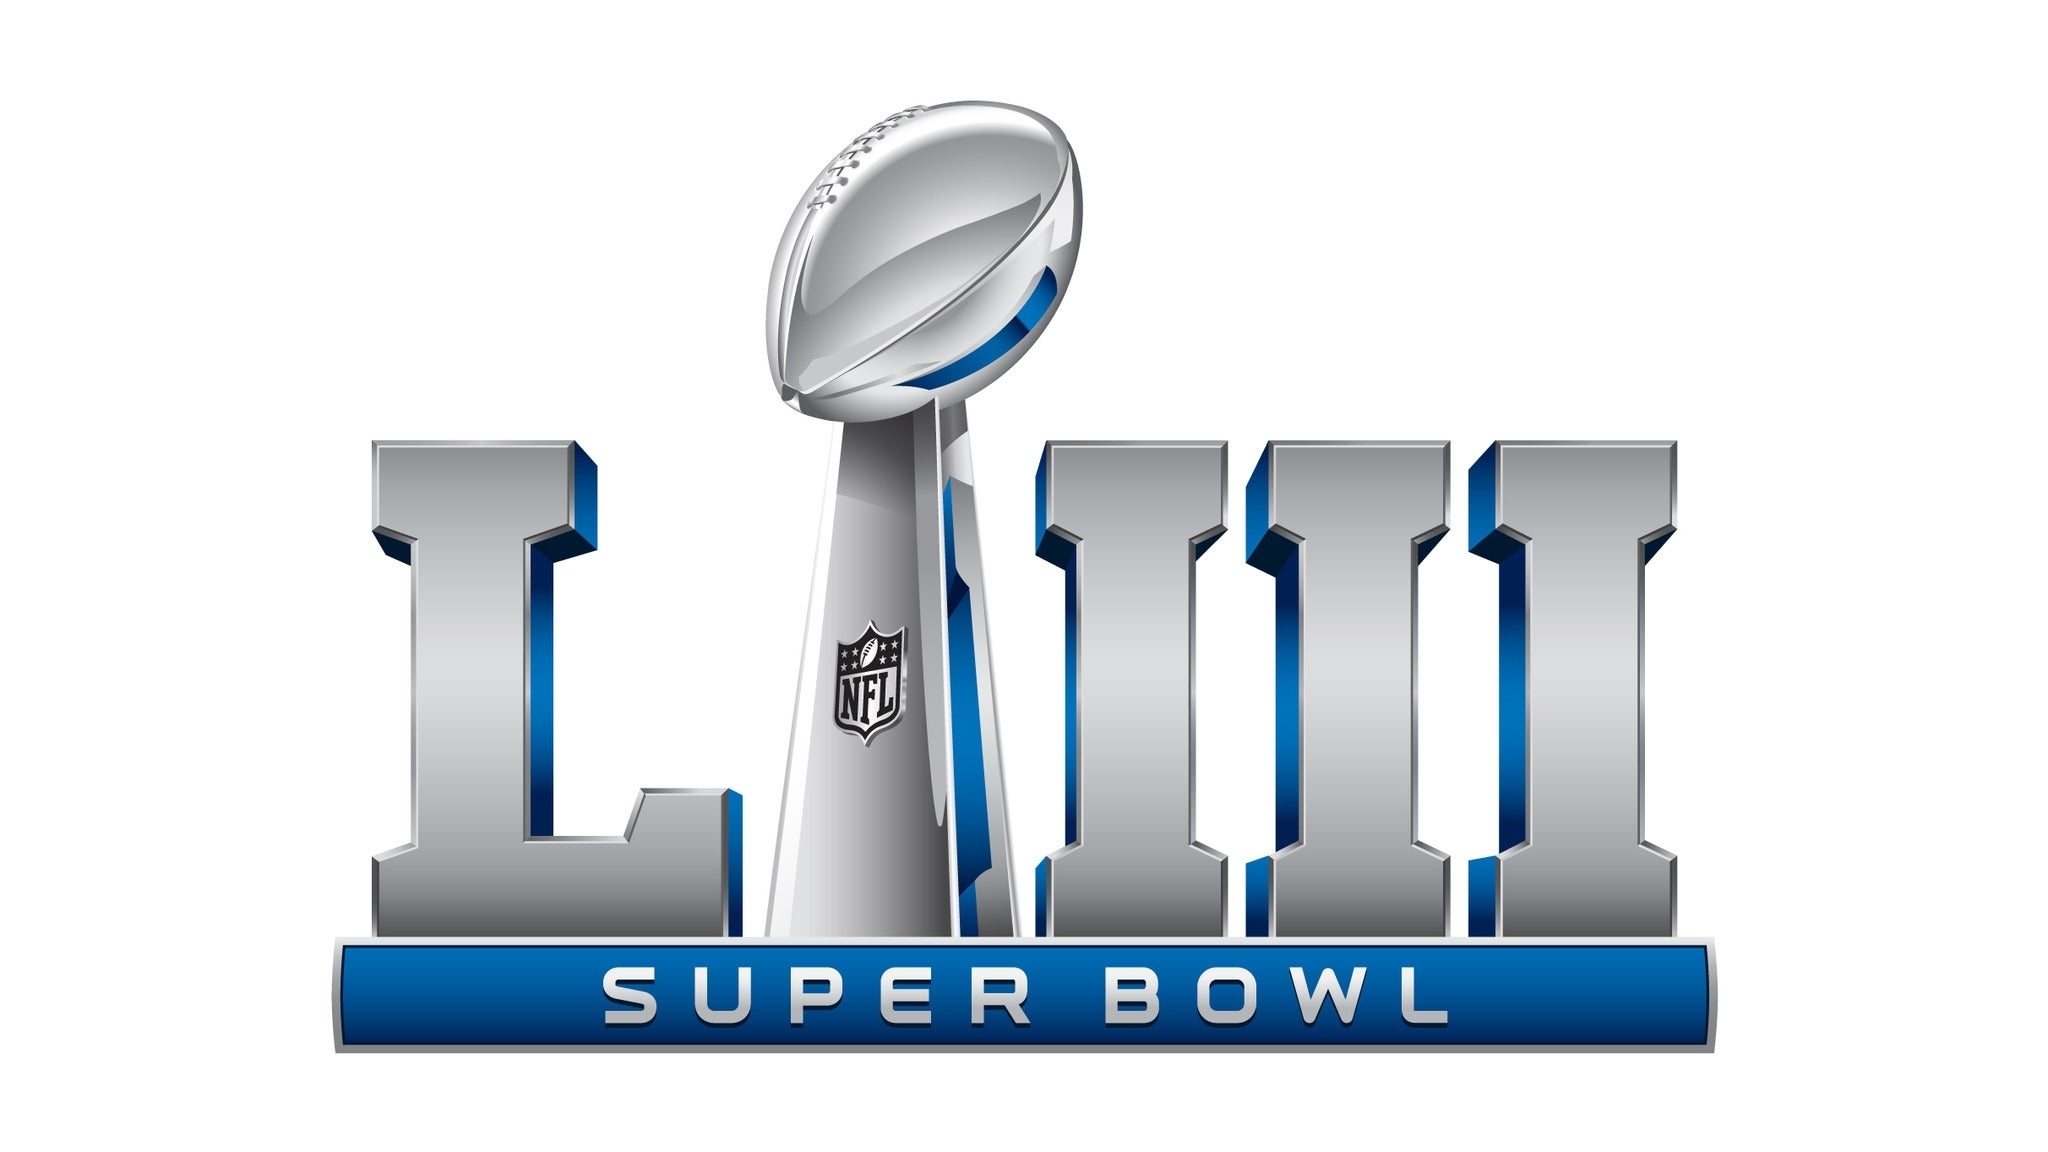 Super Bowl Liii Tickets | Single Game Tickets & Schedule with regard to Super Bowl 2019 Tickets Ticketmaster